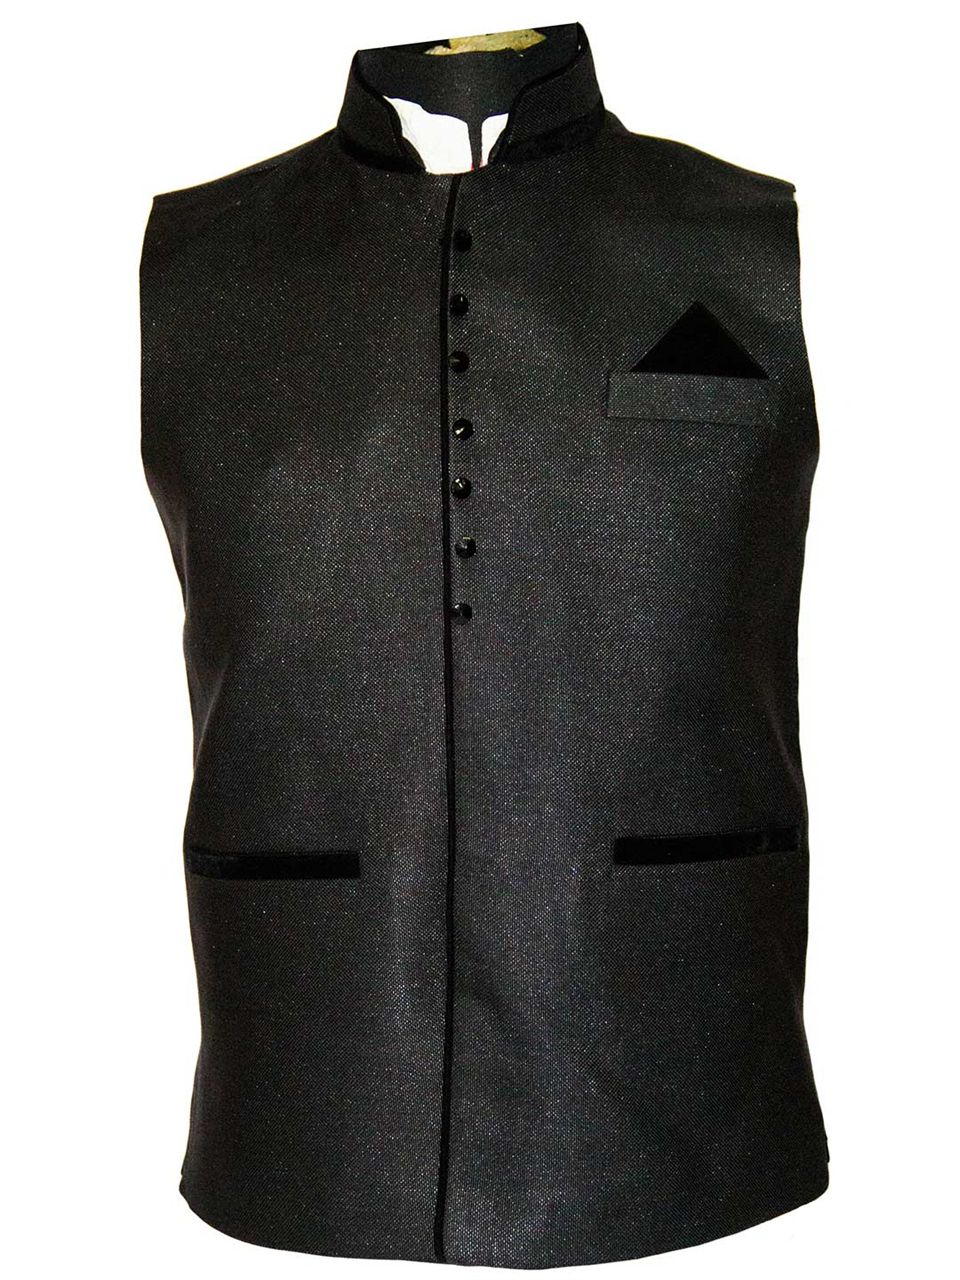 Discover Ted Baker's collection of men's waistcoats to give you that tailored stance. From knitted wool, Herringbone to jacquard waistcoats and more.